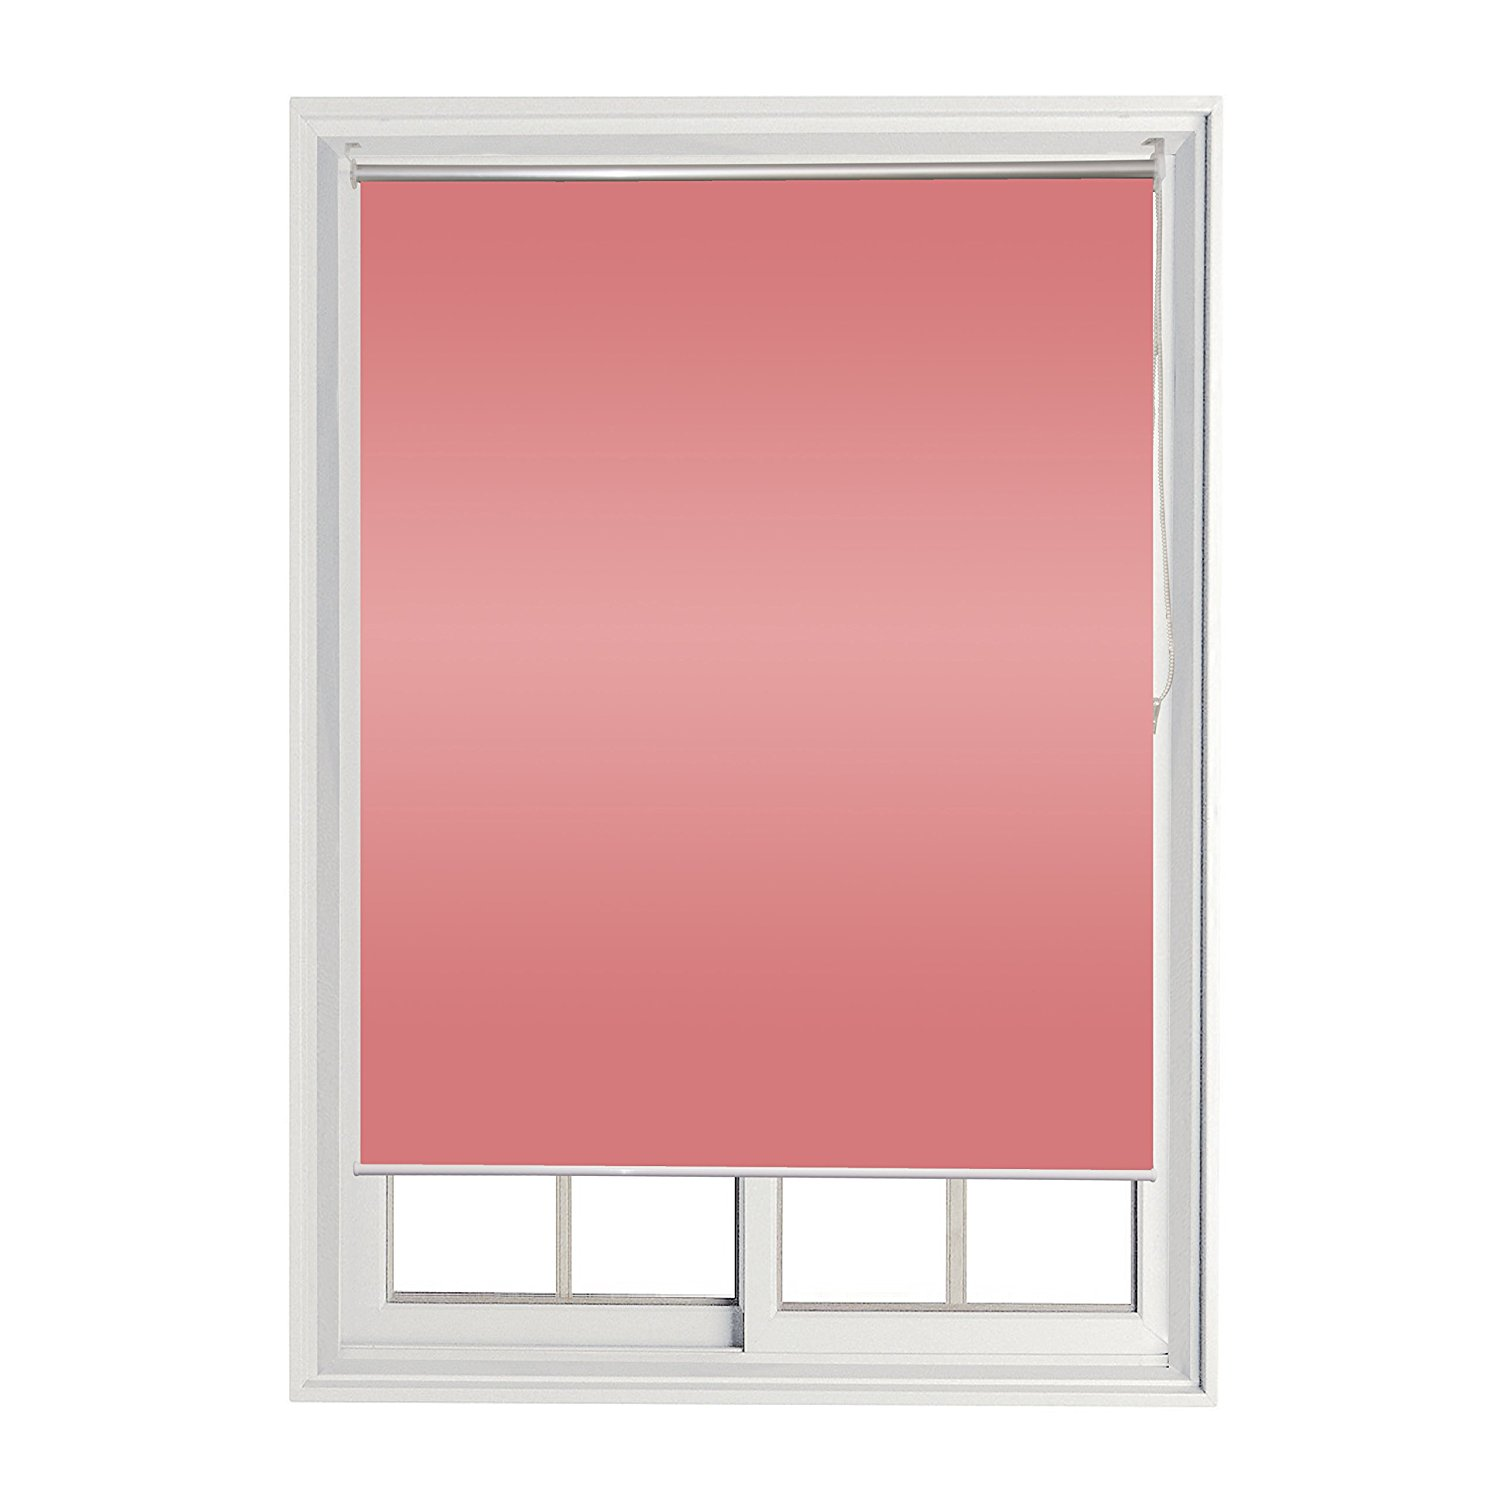 Roll Up Shade Windscreen Sunshade Blinds 48 X 72 Inches, Pink